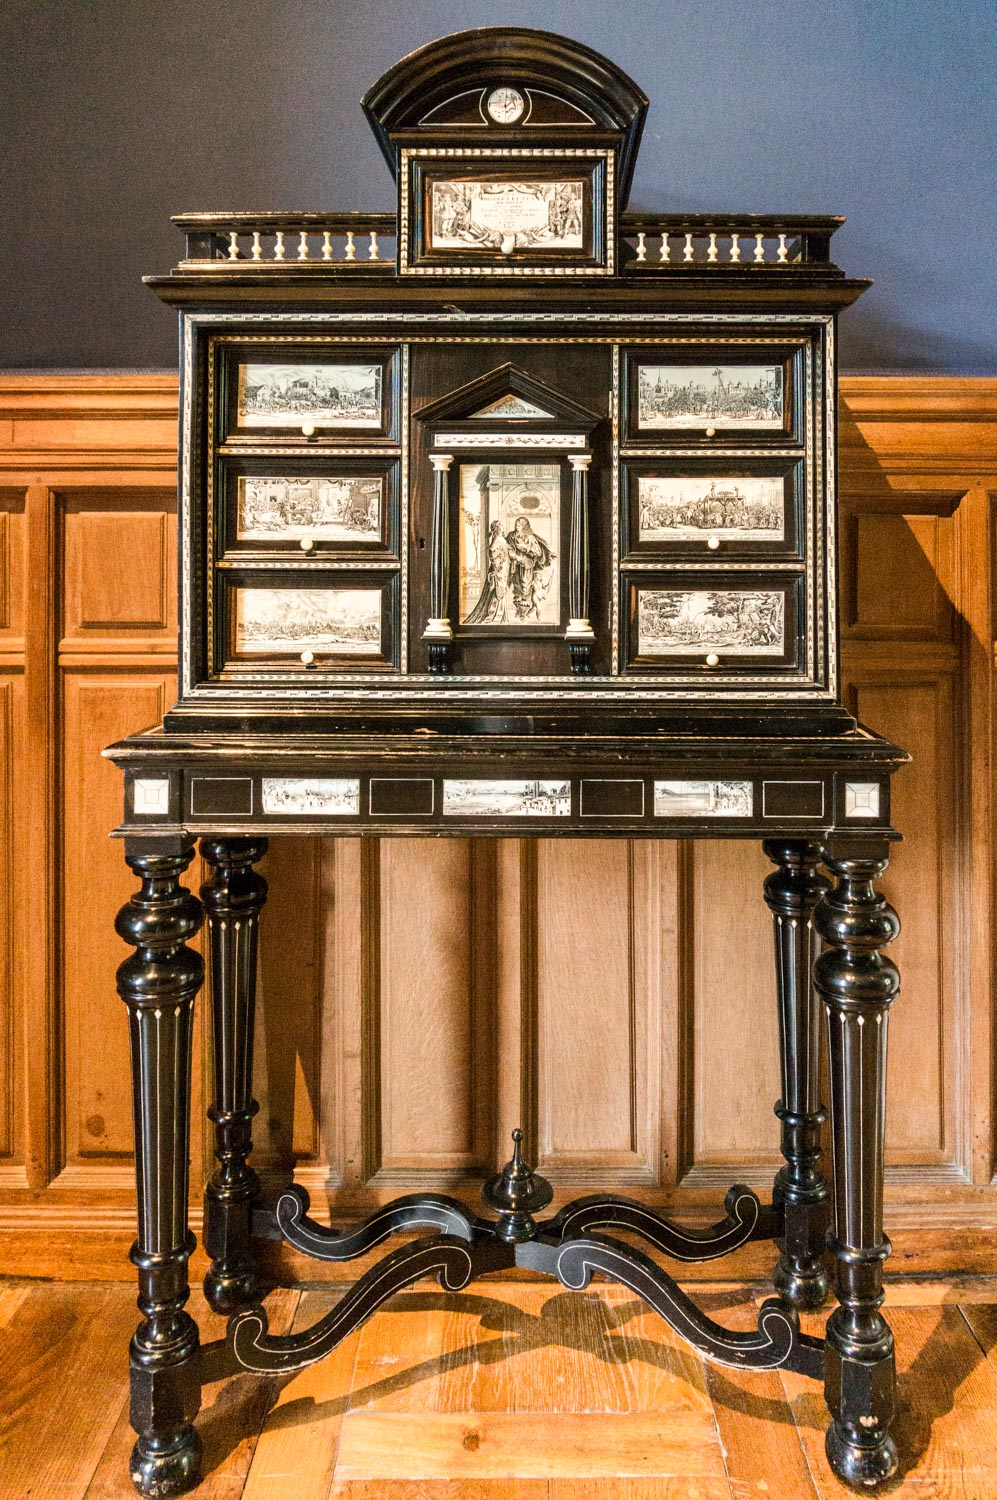 This amazing cabinet was so beautifully detailed!